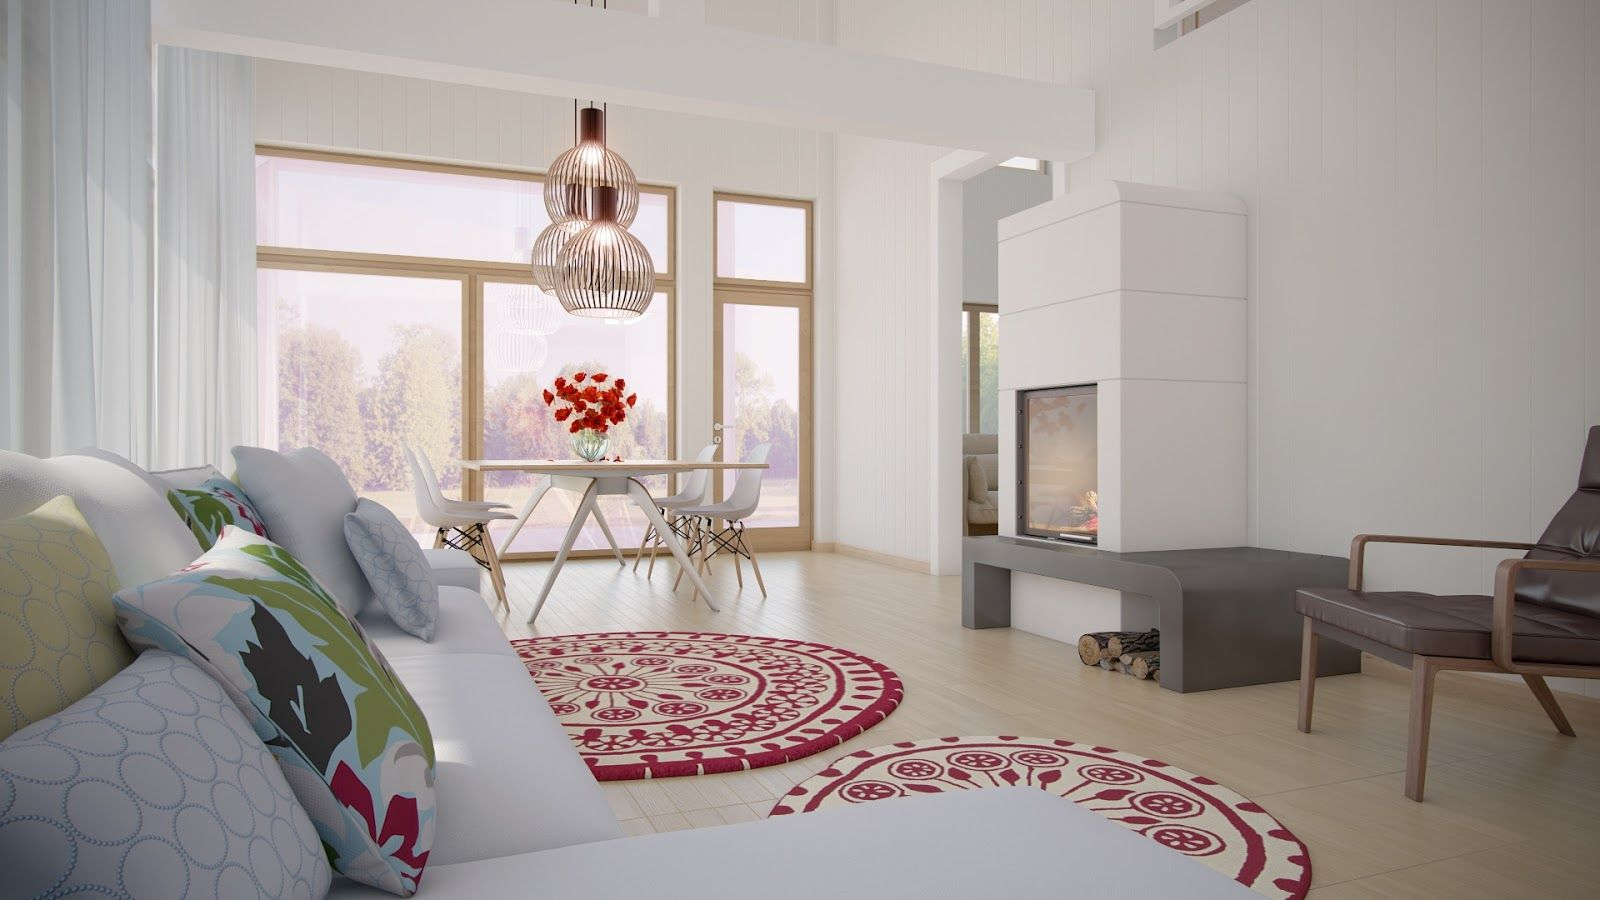 Decoration Ideas For Apartments  Bedrooms  Home Small Living Stunning Living Room Design Ideas 2014 Decorating Inspiration